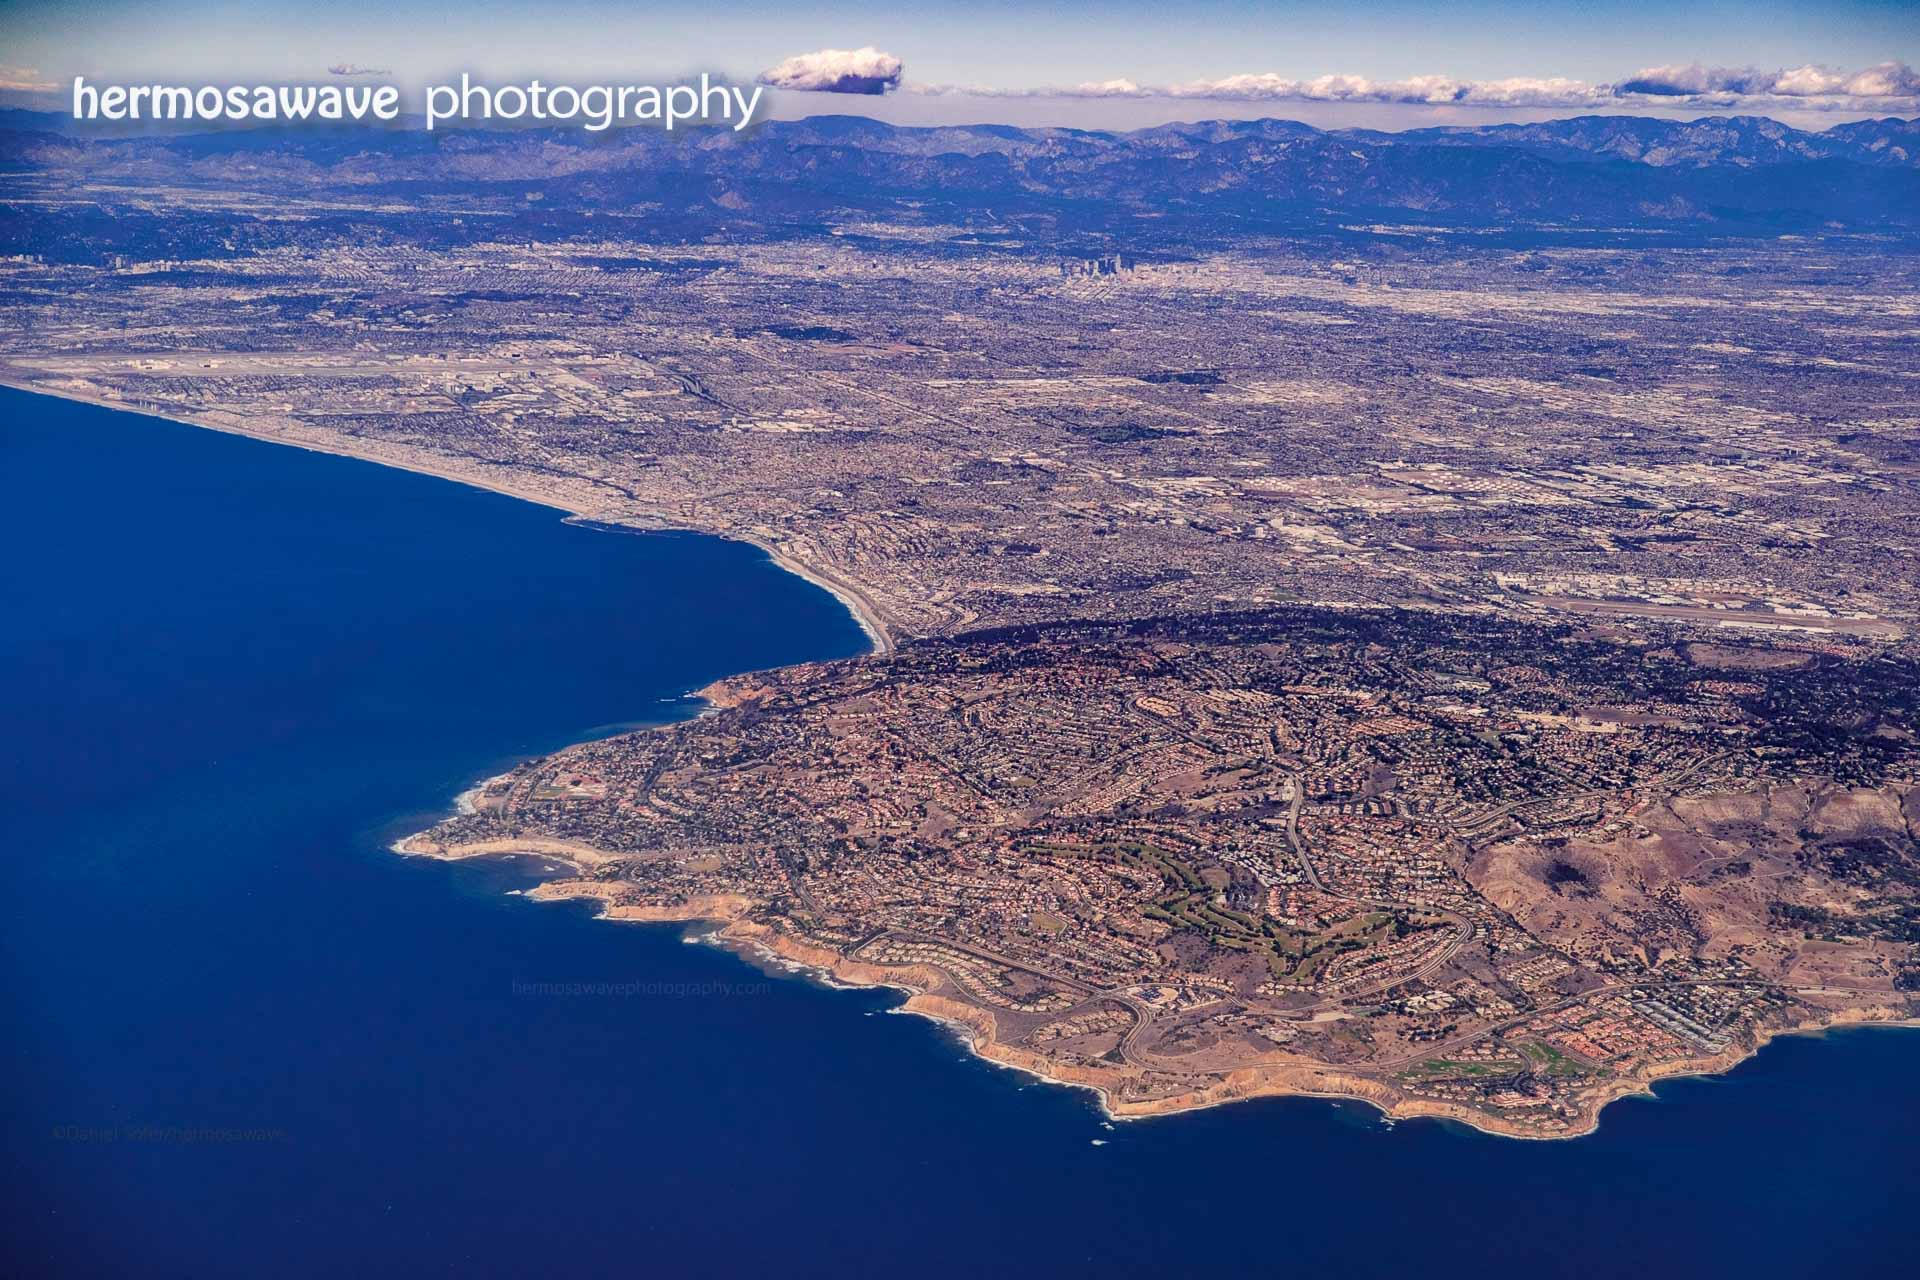 Palos Verdes and Los Angeles from the Air